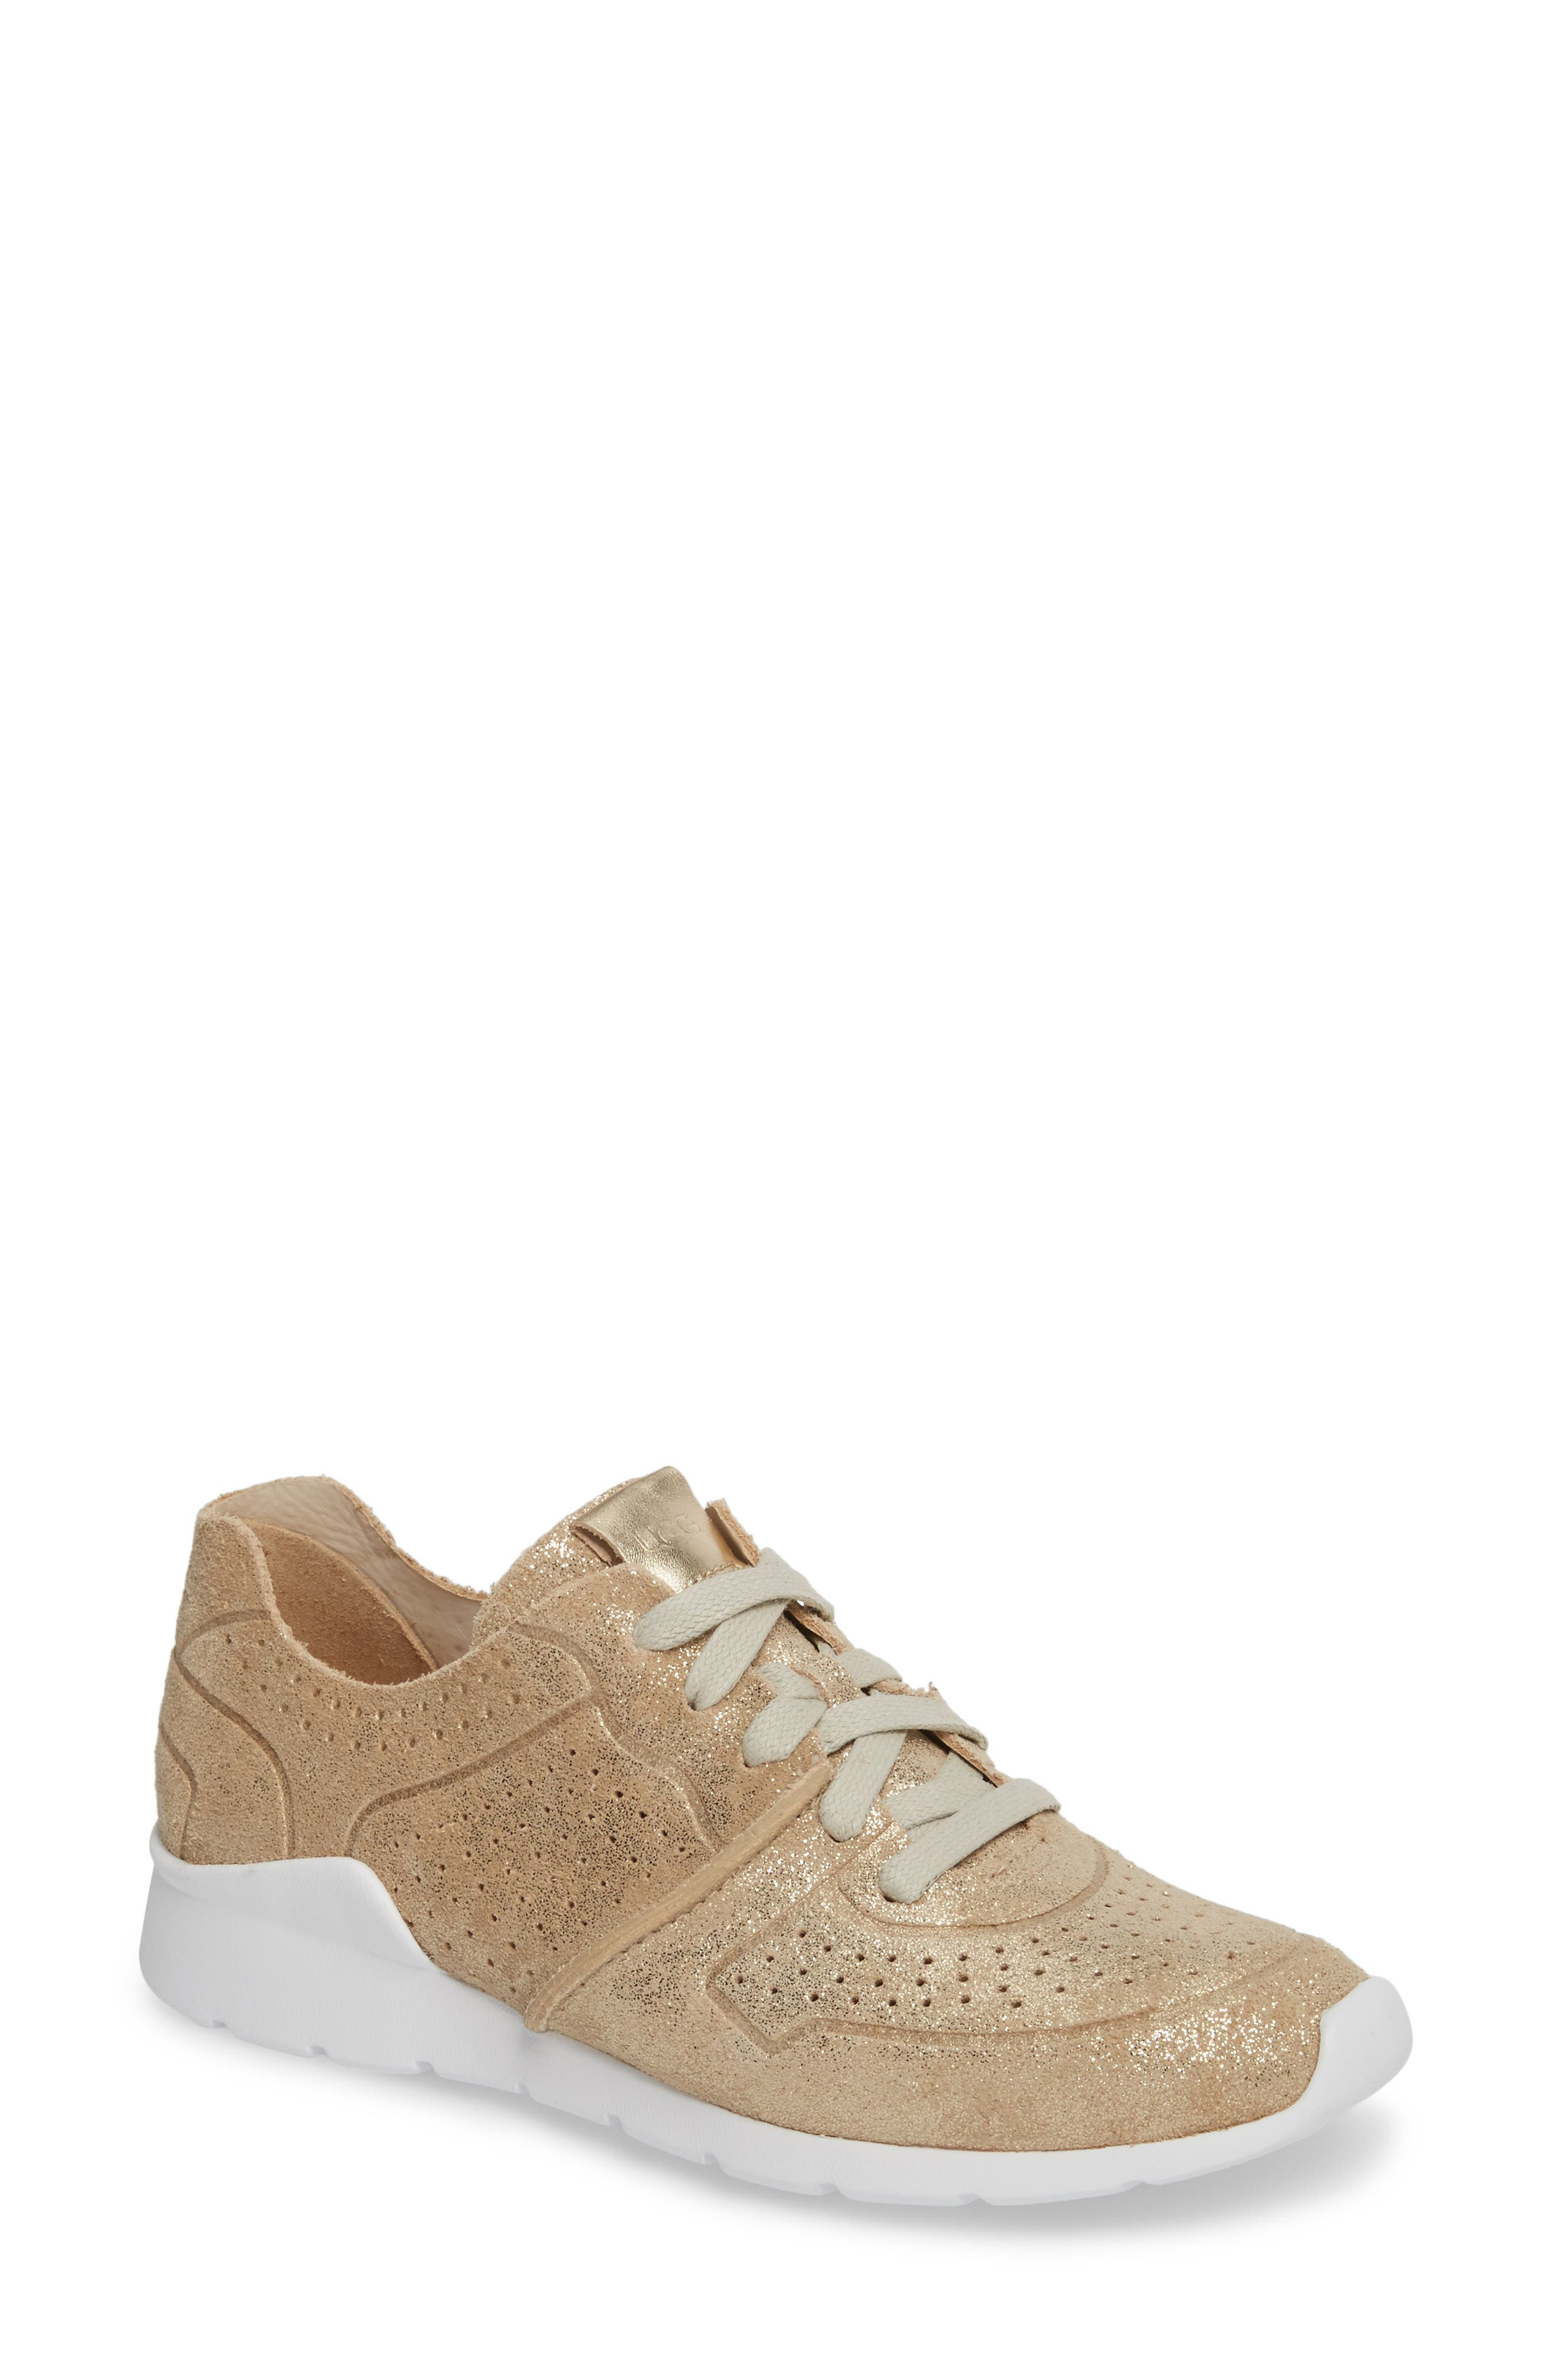 Tye Stardust Sneaker,                         Main,                         color, Gold Leather